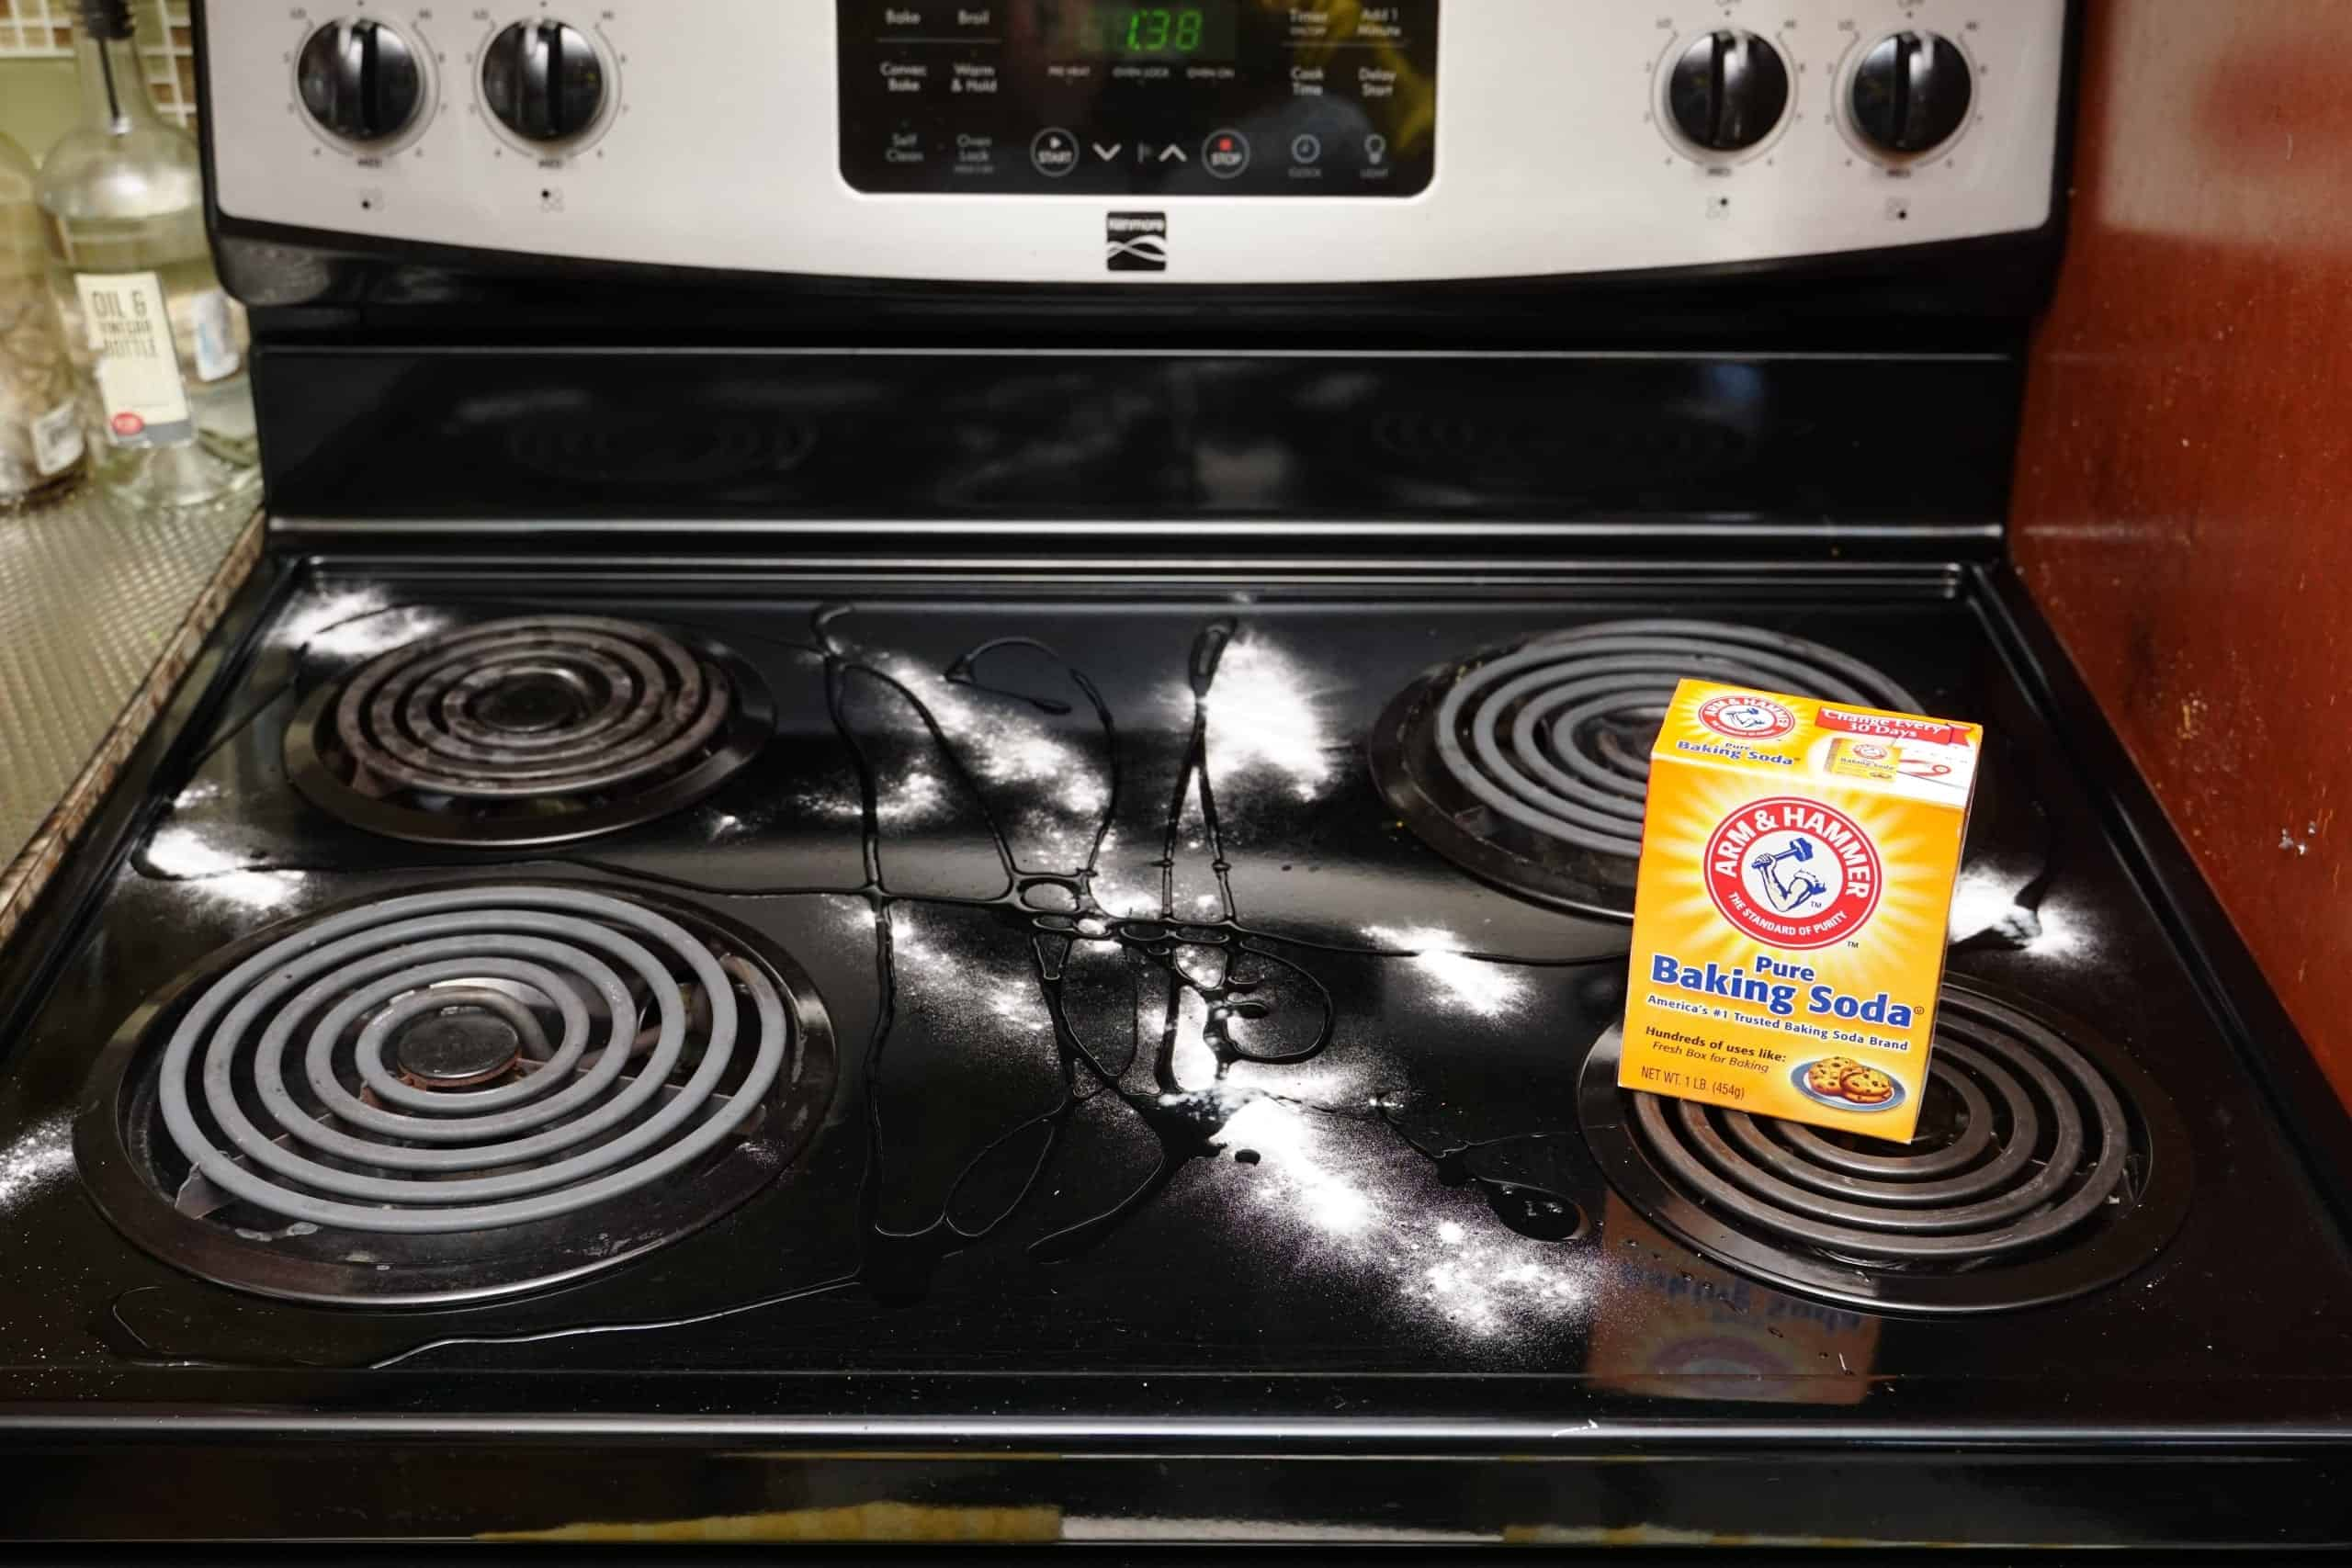 The Quickest And Easiest Way To Clean Your Glass Stove Top Or Any Stove Top In Less Than 2 Minutes